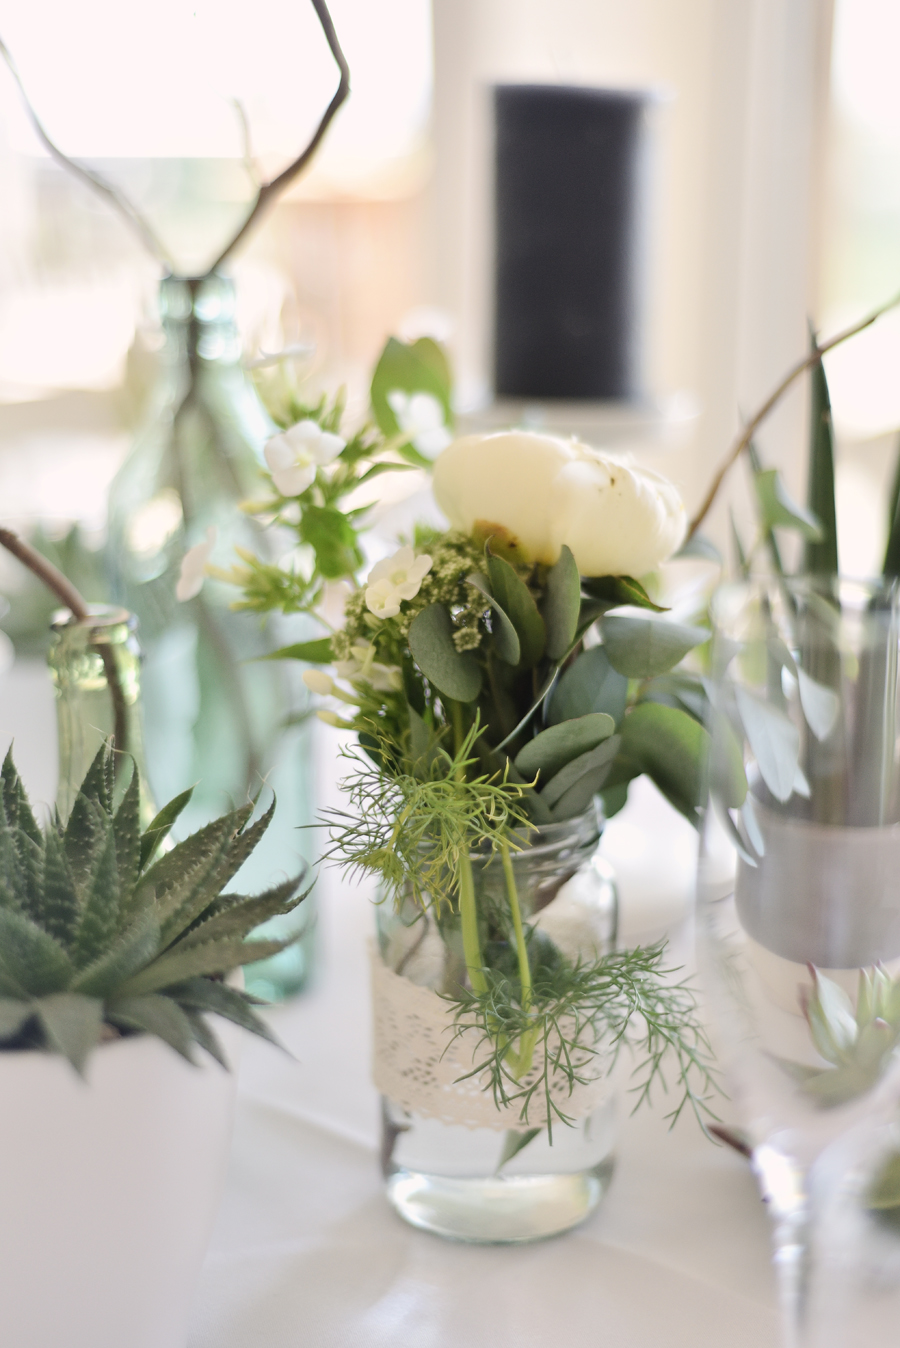 Marina Walker Photography's styled shoot with succulents and affordable details for a minimalist boho wedding (14)